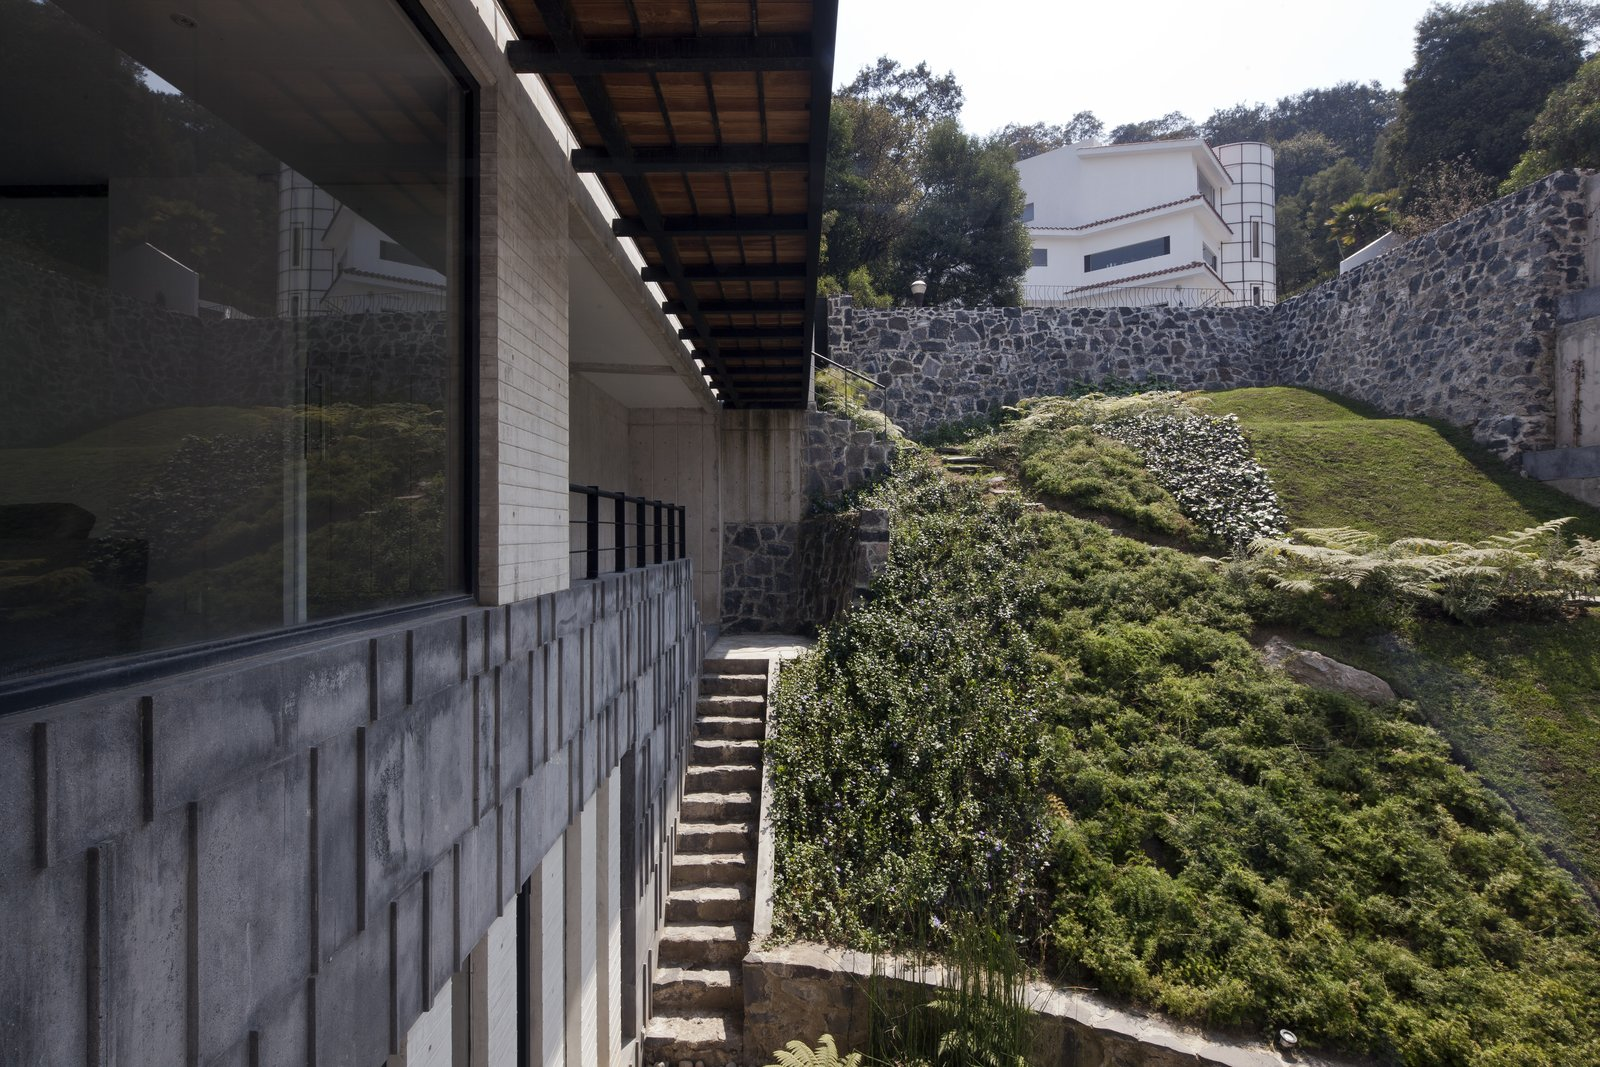 The architects designed a picturesque texture for the hillside that provides a stimulating visual landscape. The recinto stone—seen left—is rhythmically divided by small ridges that also mark the passage of time with their shadows.  Photo 10 of 12 in 5 Reasons Why Landscaping and Bringing Plants Into Your Home Is So Valuable from A Daring Hillside Home Made of Wood, Concrete, and Volcanic Stone